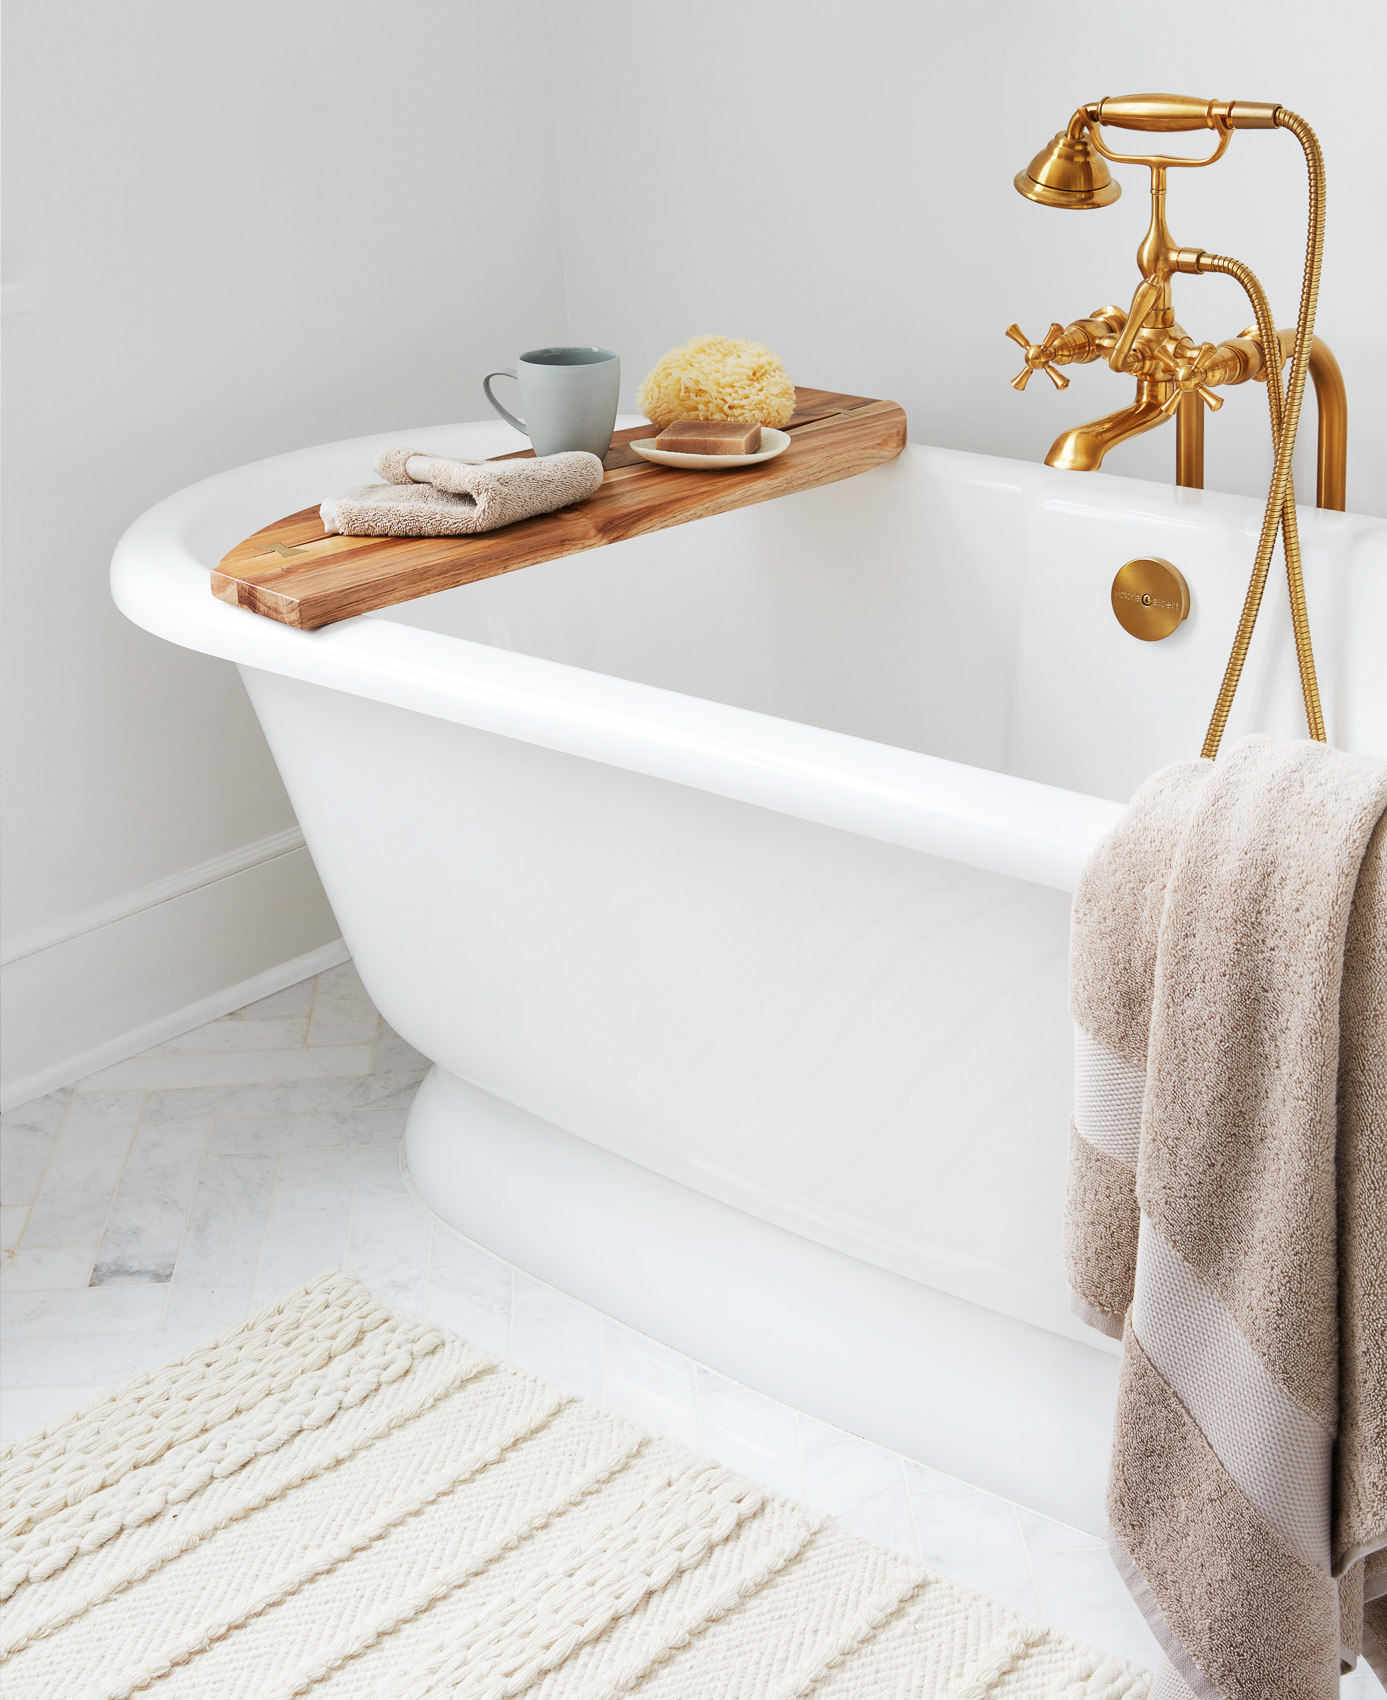 BAB_Dune_Plush-Towels_Towel_Bathtub_V2_0407